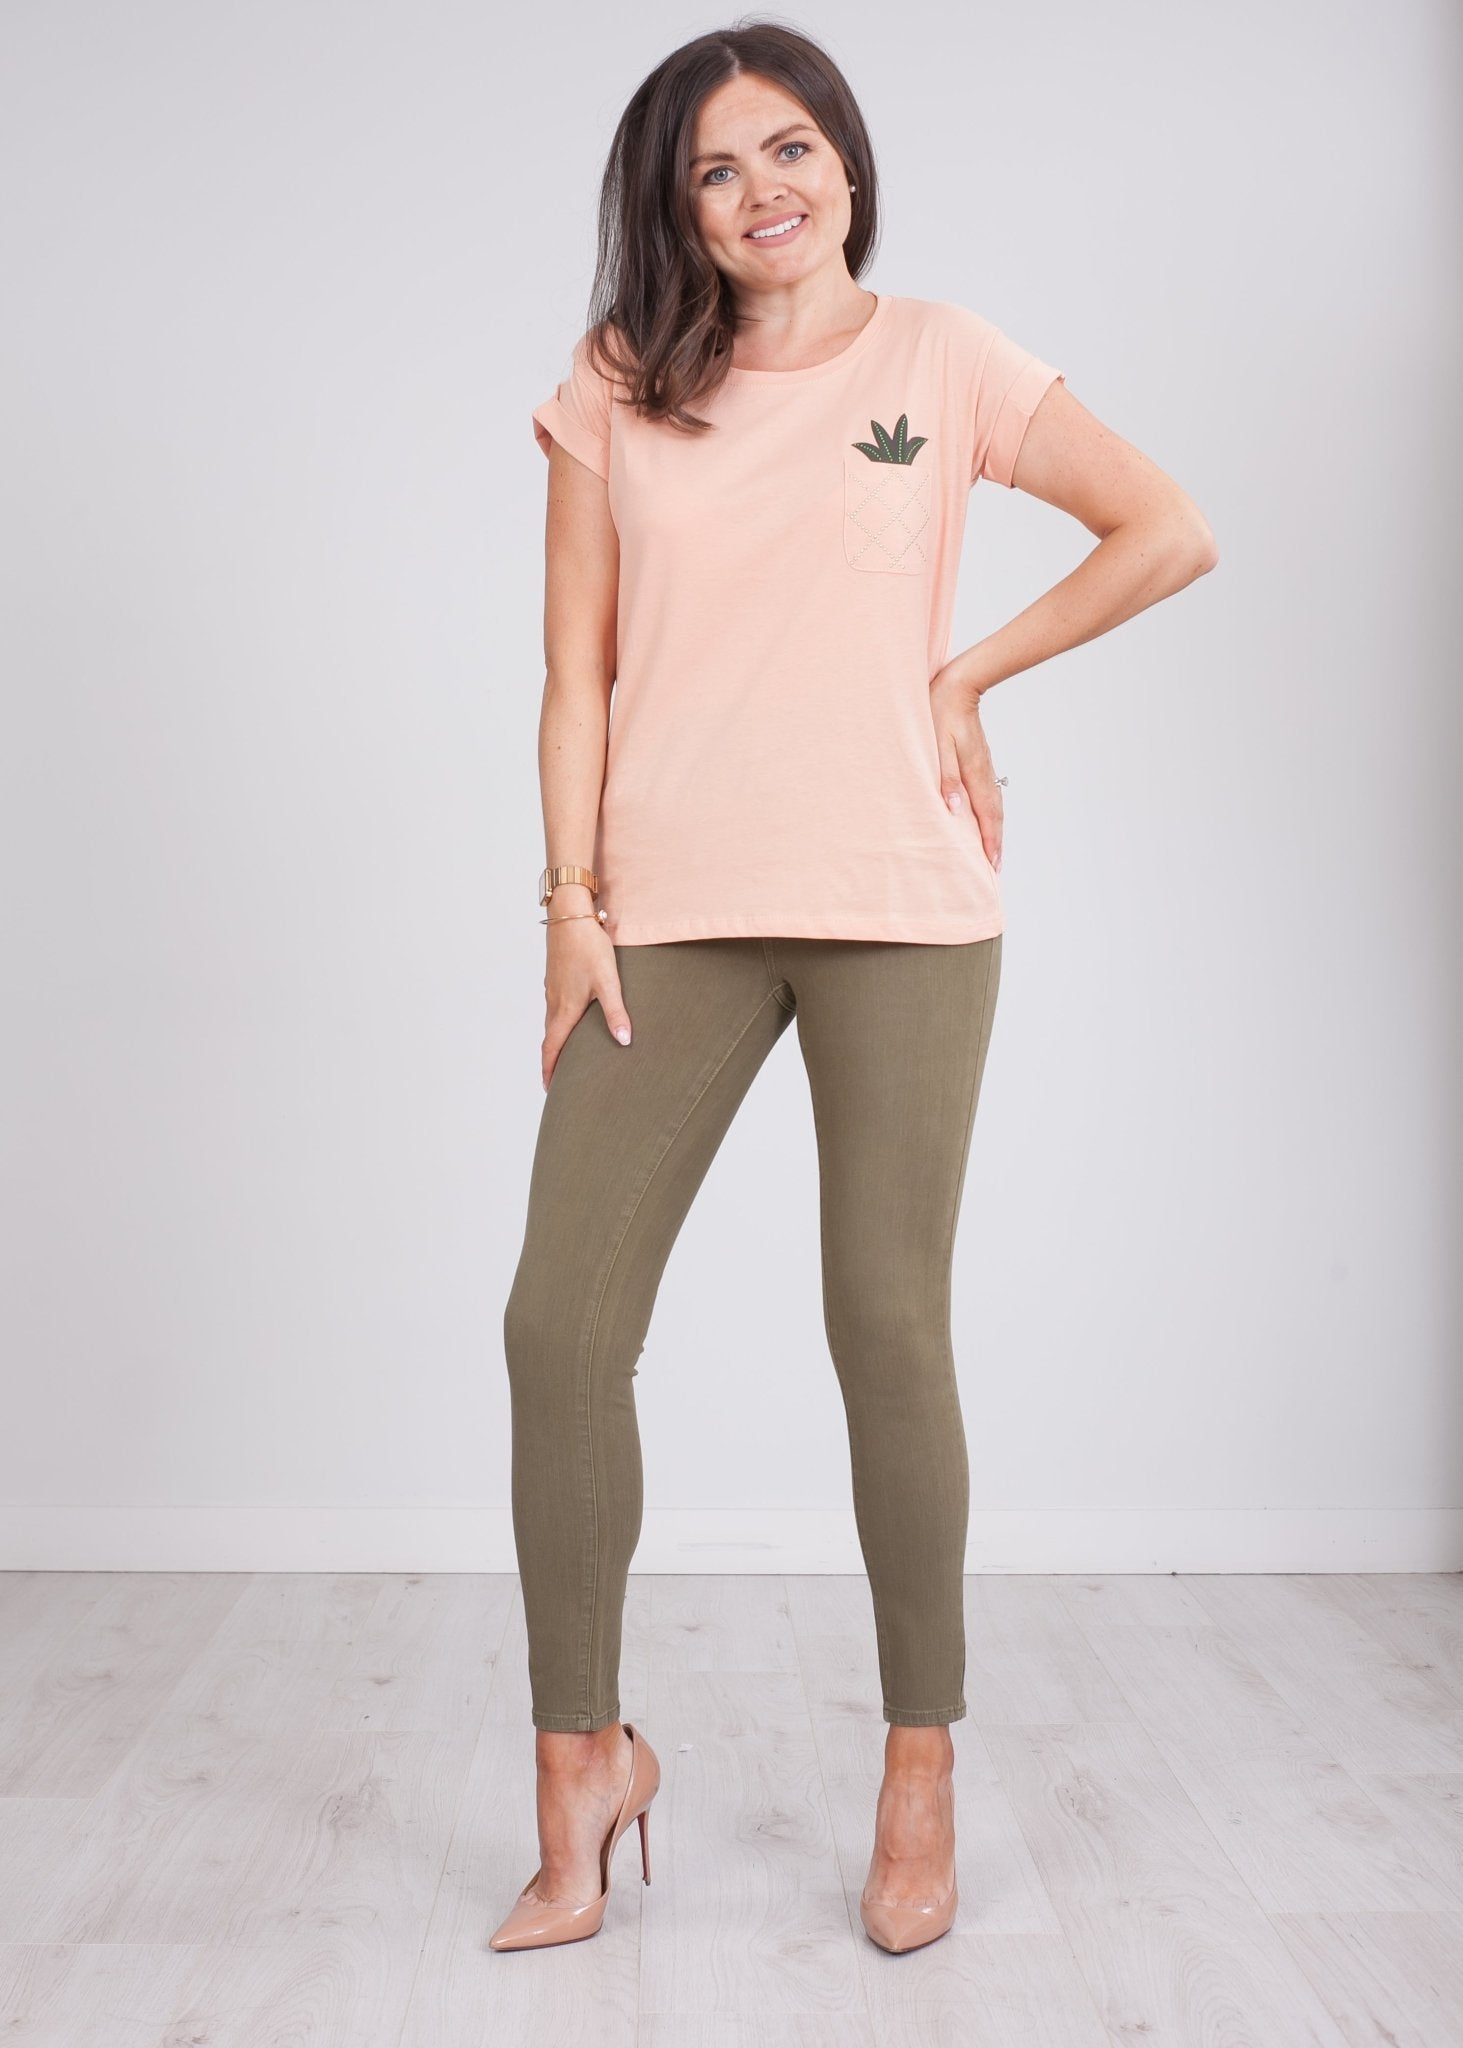 Heidi Peach T-Shirt - The Walk in Wardrobe